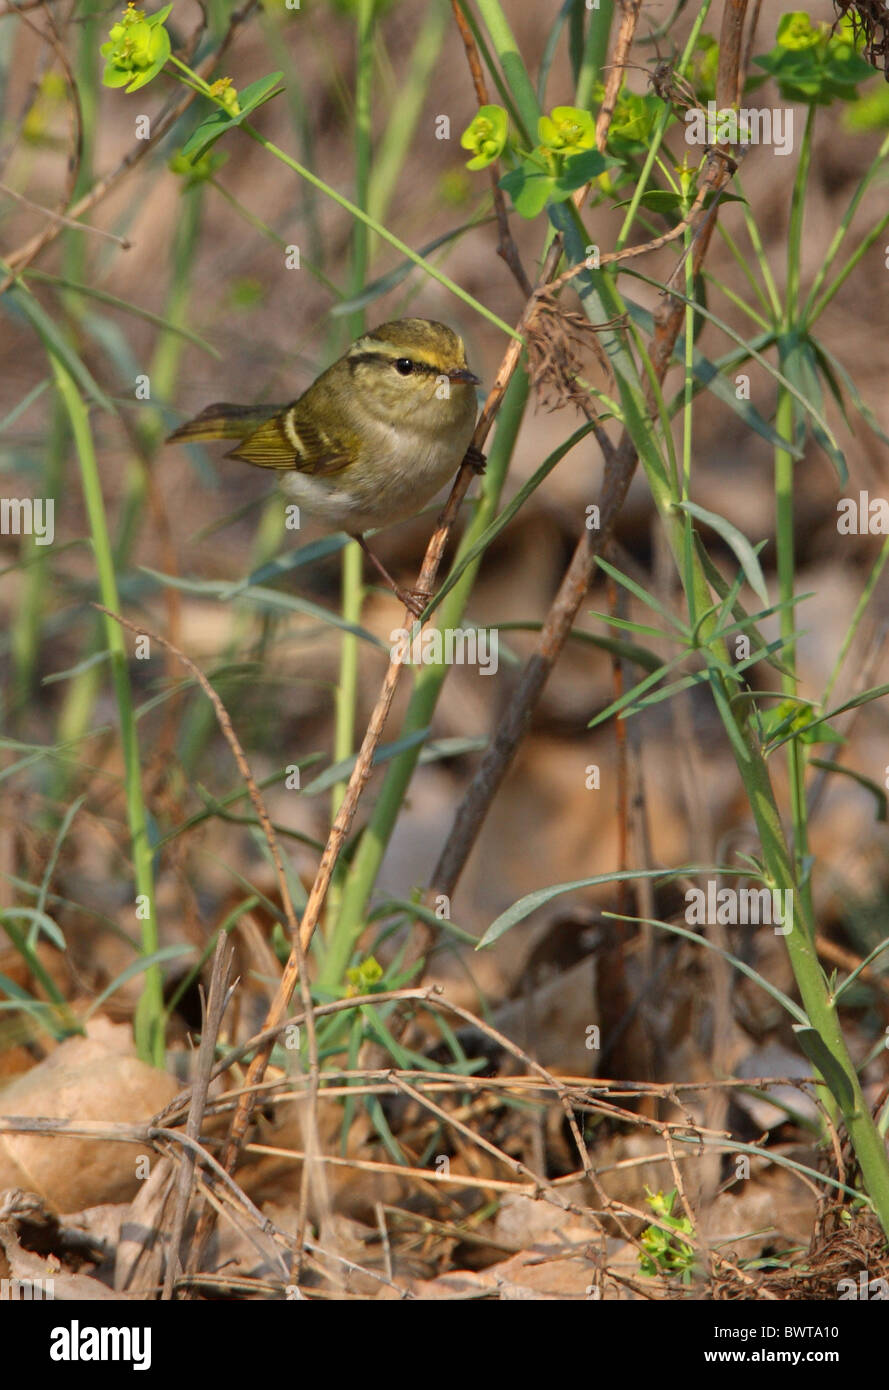 Pallas's Warbler (Phylloscopus proregulus) adult, perched in low vegetation, Hebei, China, may Stock Photo